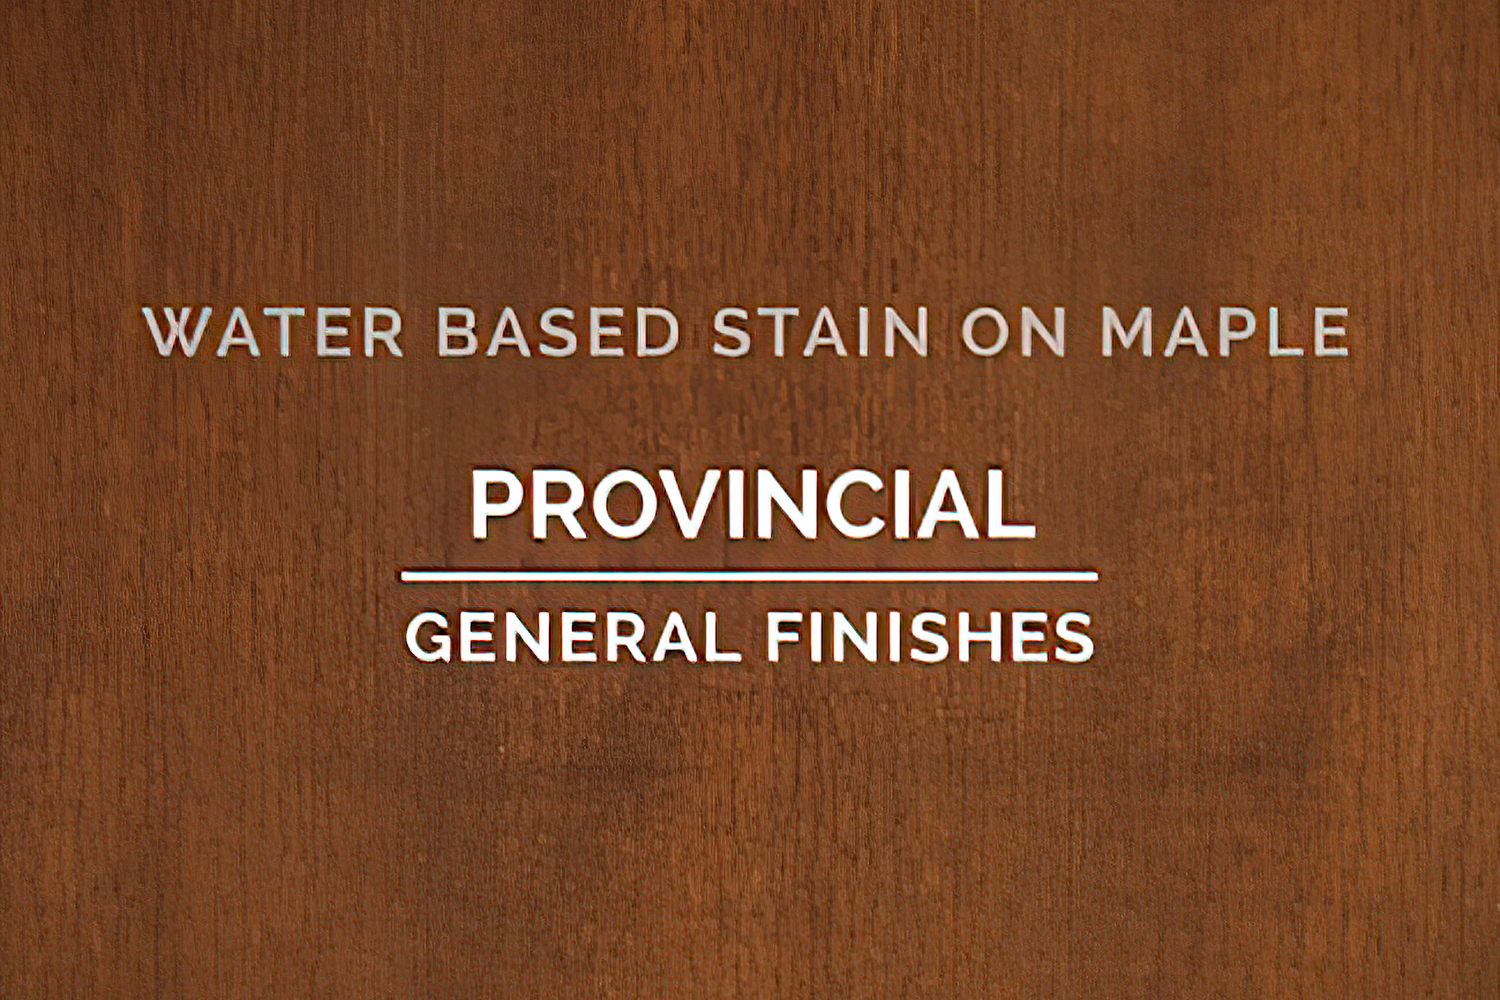 General Finishes Provincial Stain Water Based